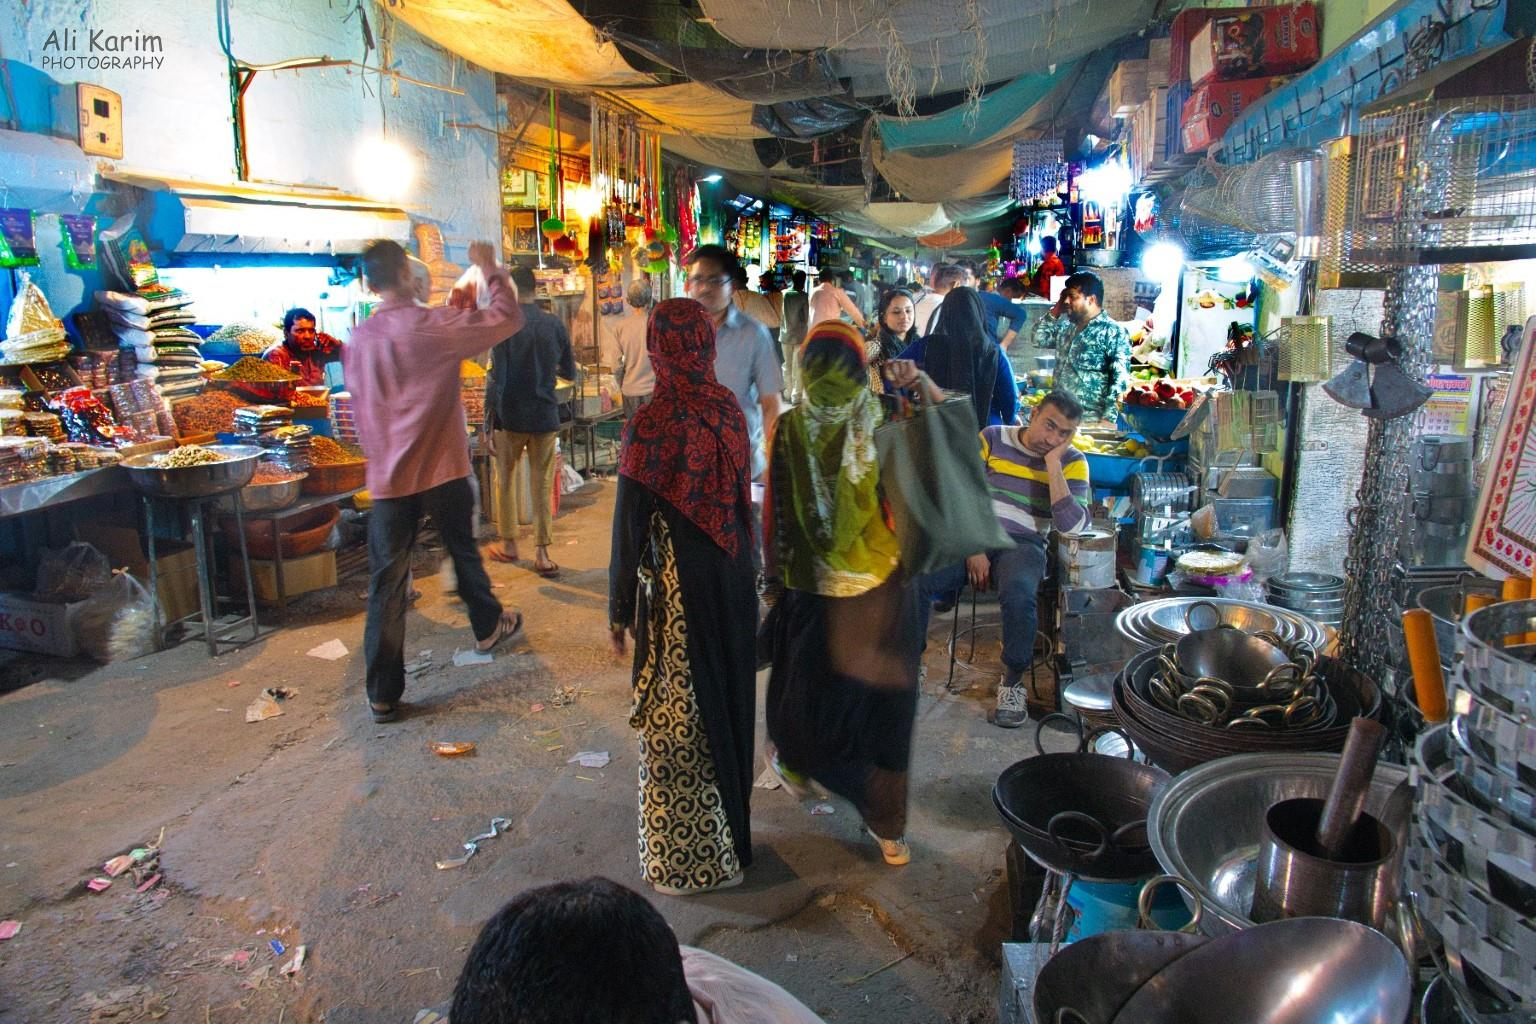 Jodhpur, Rajasthan Night scene at Sardar market